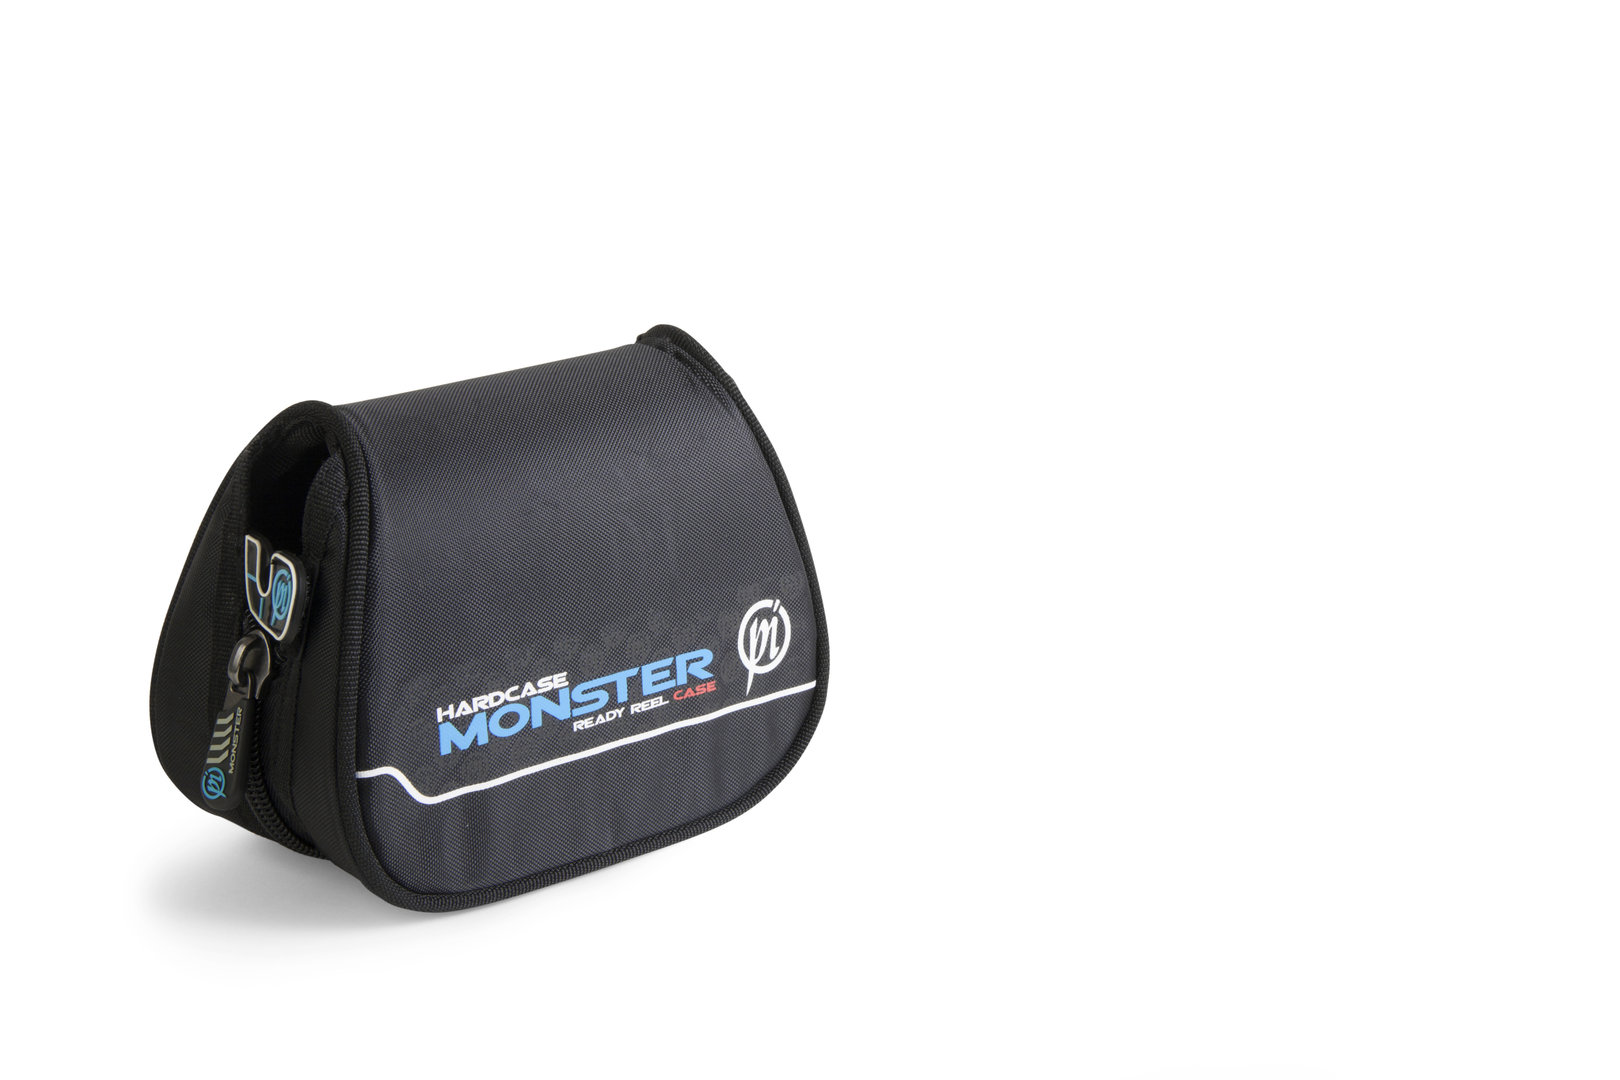 Monster® Ready Reel Case - Rollenbehälter